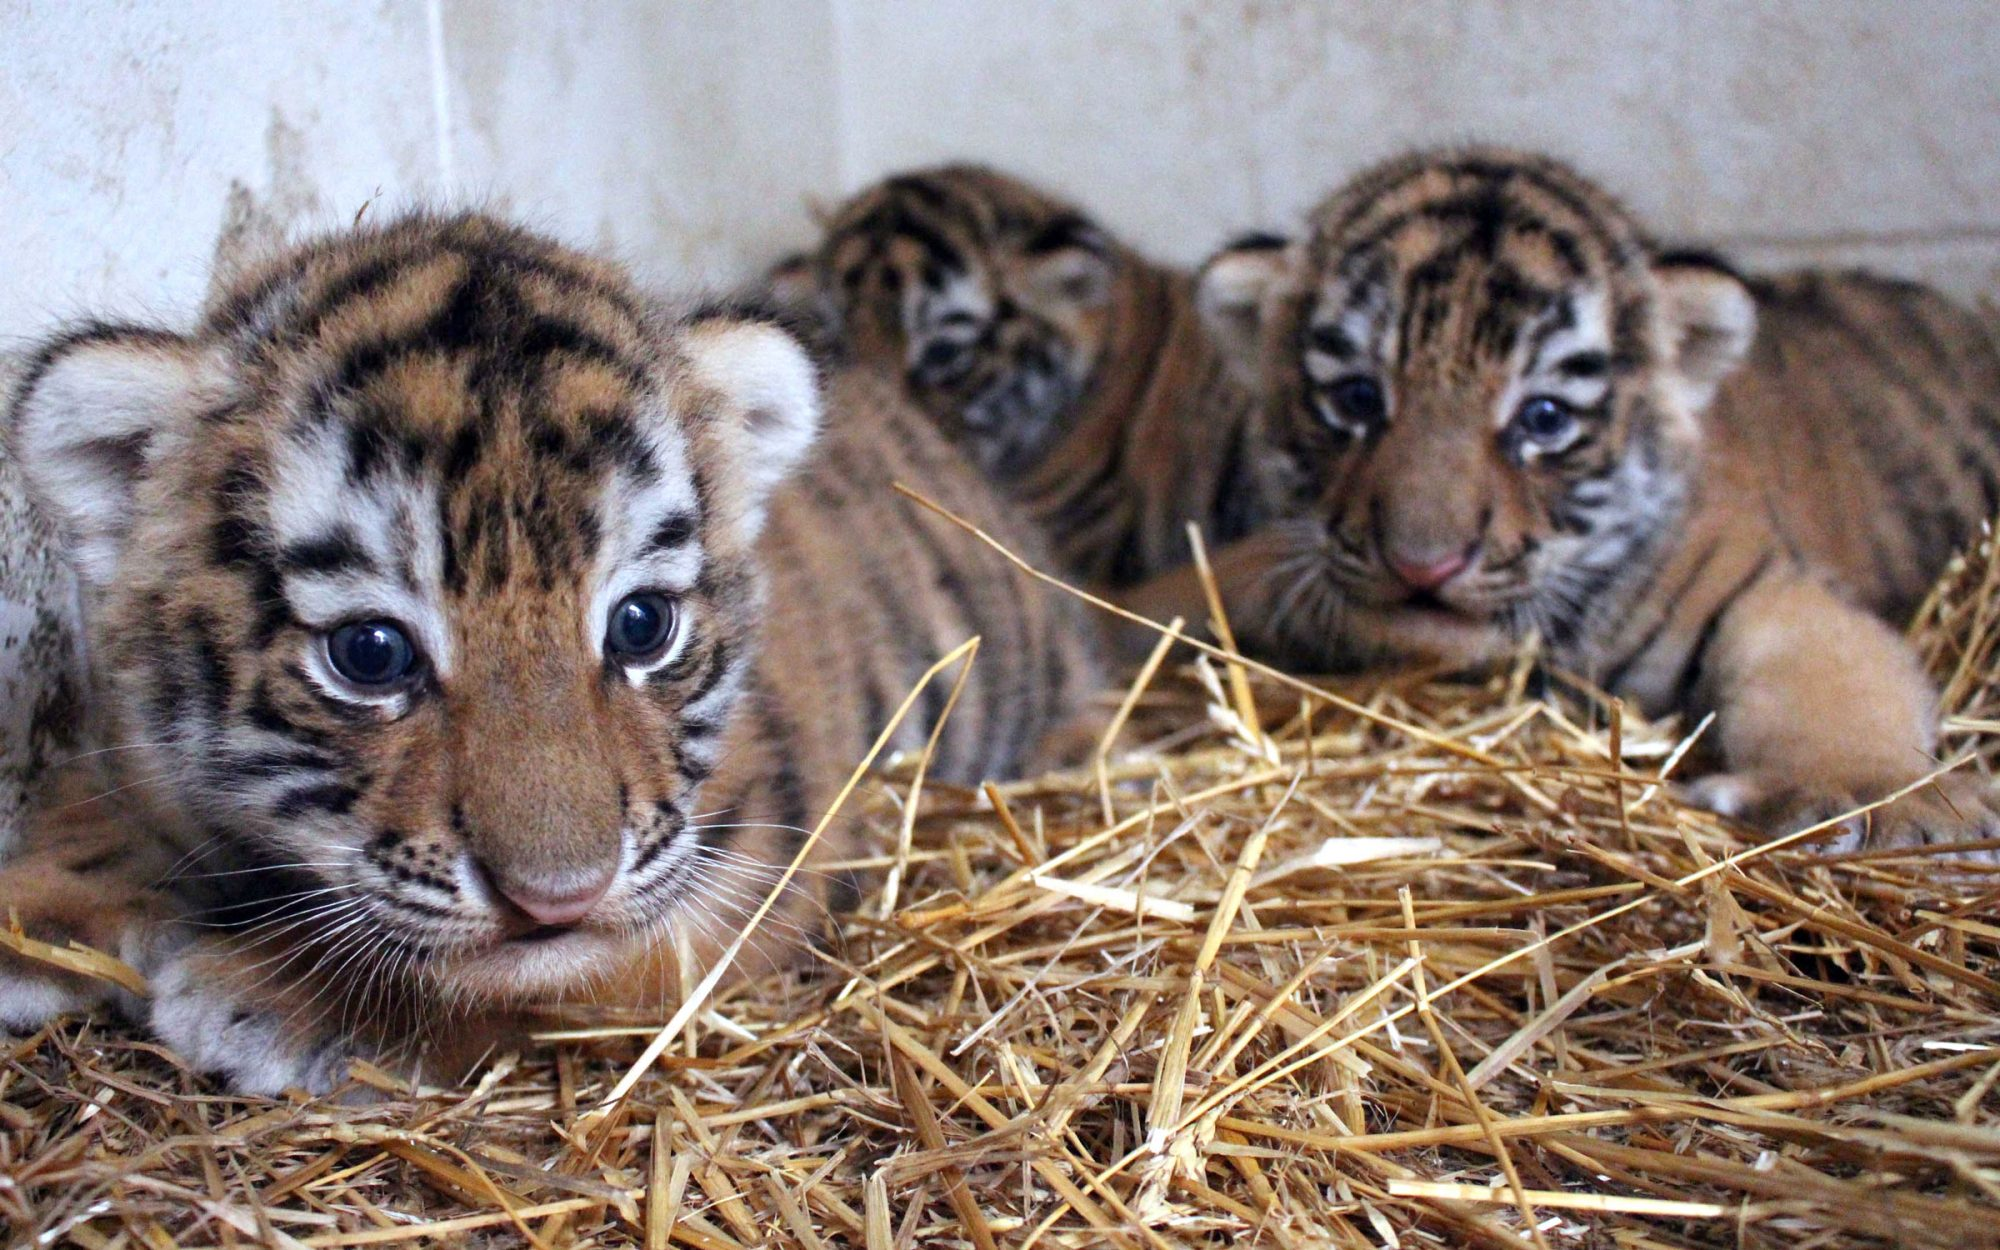 Baby animals at the zoo this week